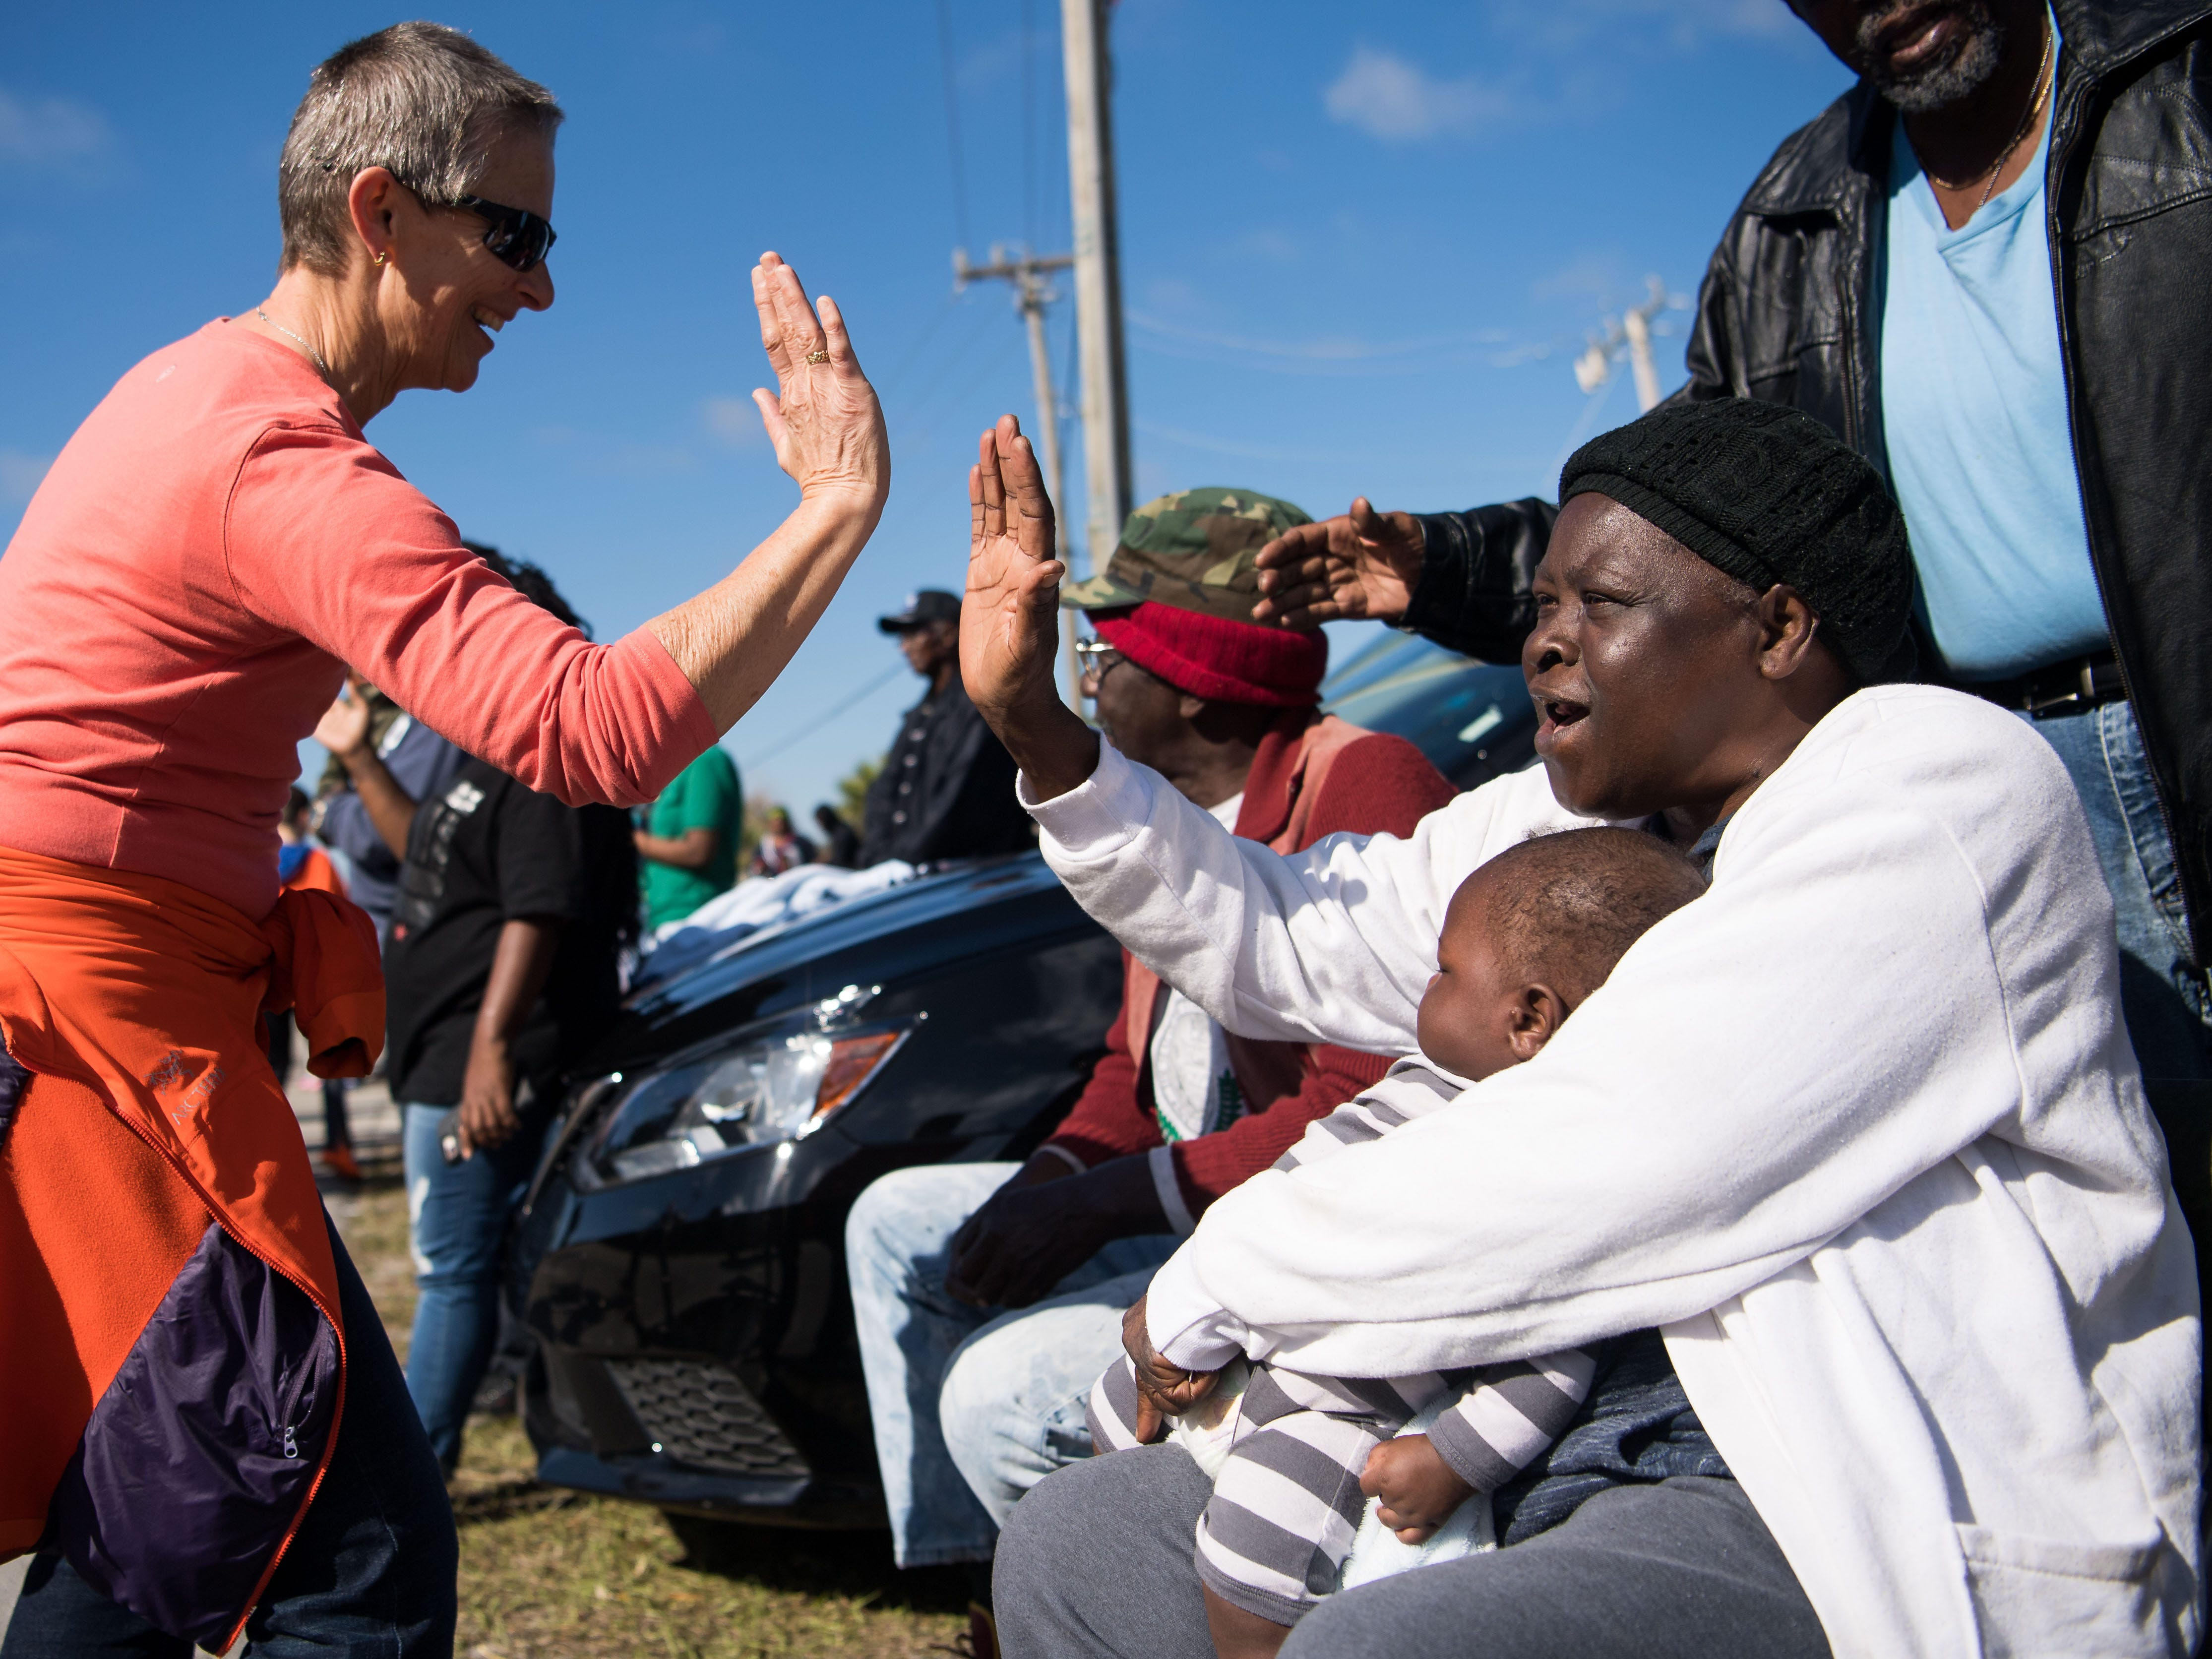 "Lifelong Gifford resident Corine Smith (right) — surrounded by her grandchildren, great-grandchildren and other family members — is high-fived by Unitarian Universalist Fellowship of Vero Beach member Dhumavati Jaya, of Sebastian, during the 2019 Martin Luther King Parade on Monday, Jan. 21, 2019, in Gifford. ""When they said he got shot, I was 10 years old at that time. ... I still listen to his speech, it means a lot,"" Smith said. ""God made us all, you know, he just made different colors,"" she added, ""but we are all his children."" The Dr. Martin Luther King Jr. Birthday Committee of Indian River County organized the parade, which ended in a festival at Gifford Park."